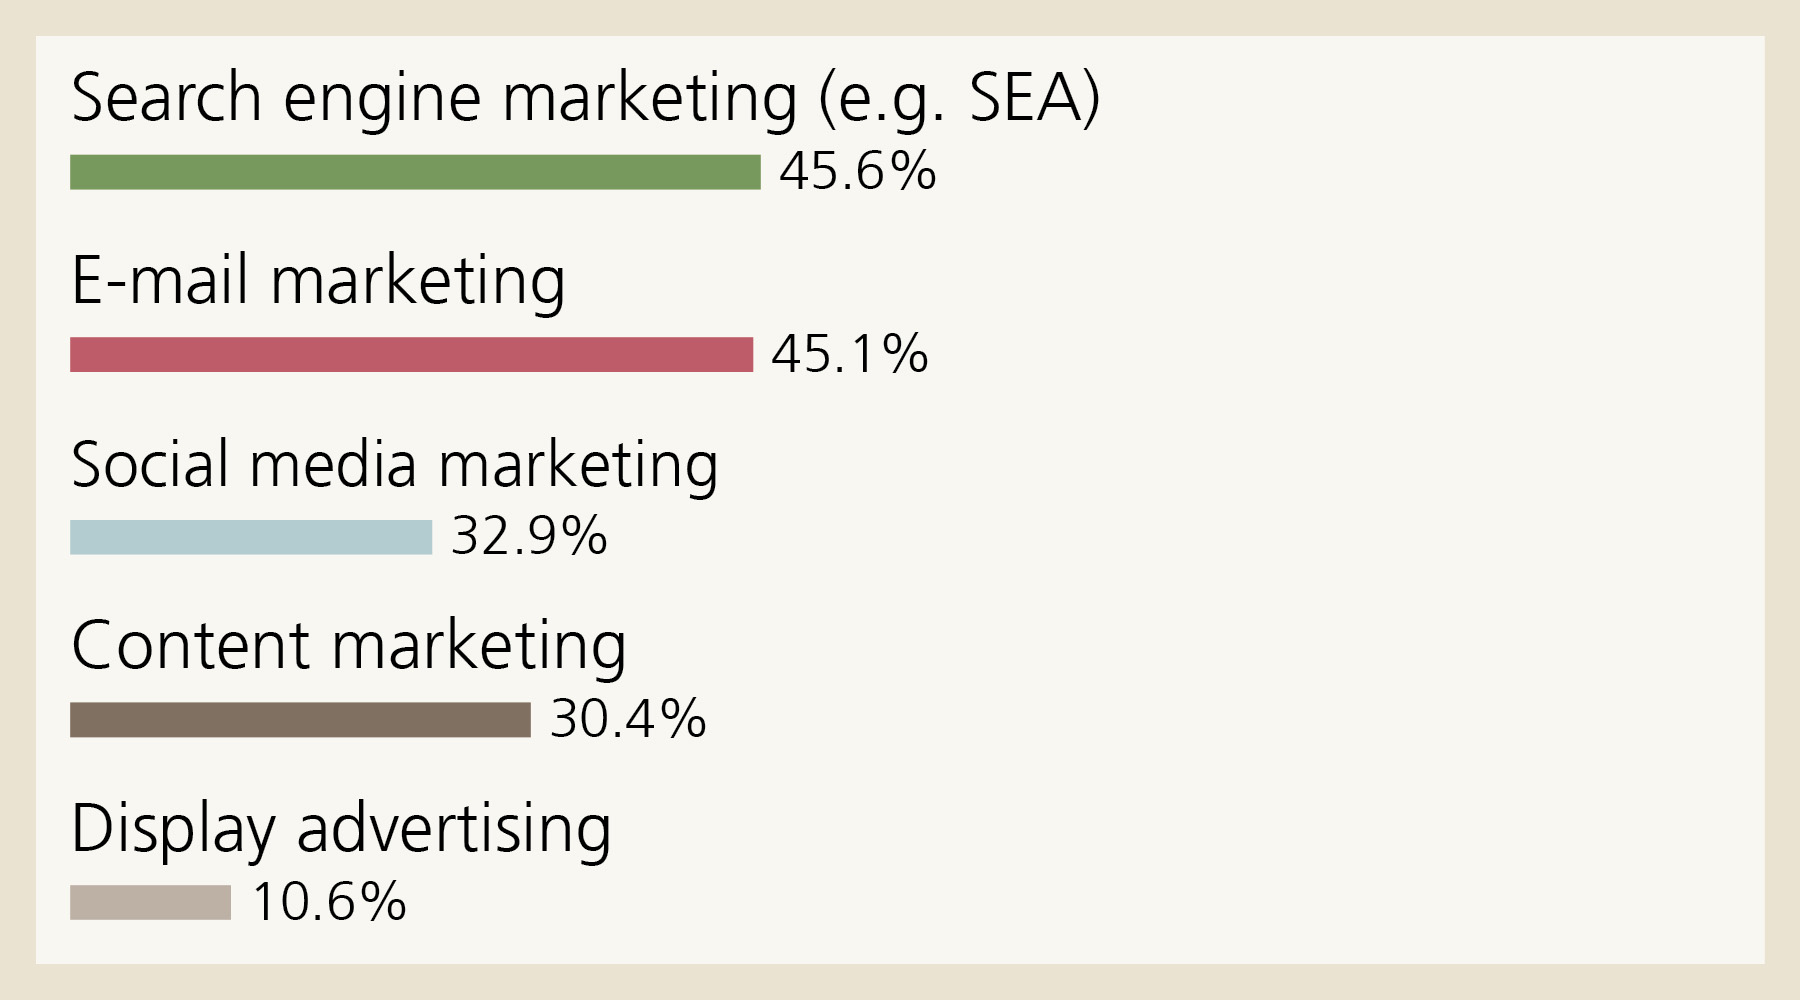 Digital communication: Around half of the small companies surveyed classify search engine and e-mail marketing as extremely important. Search engine marketing (e.g. SEA)  45.6%, E-mail marketing 45.1%, Social media marketing 32.9%, Content marketing 30.4%, Display advertising 10.6%.